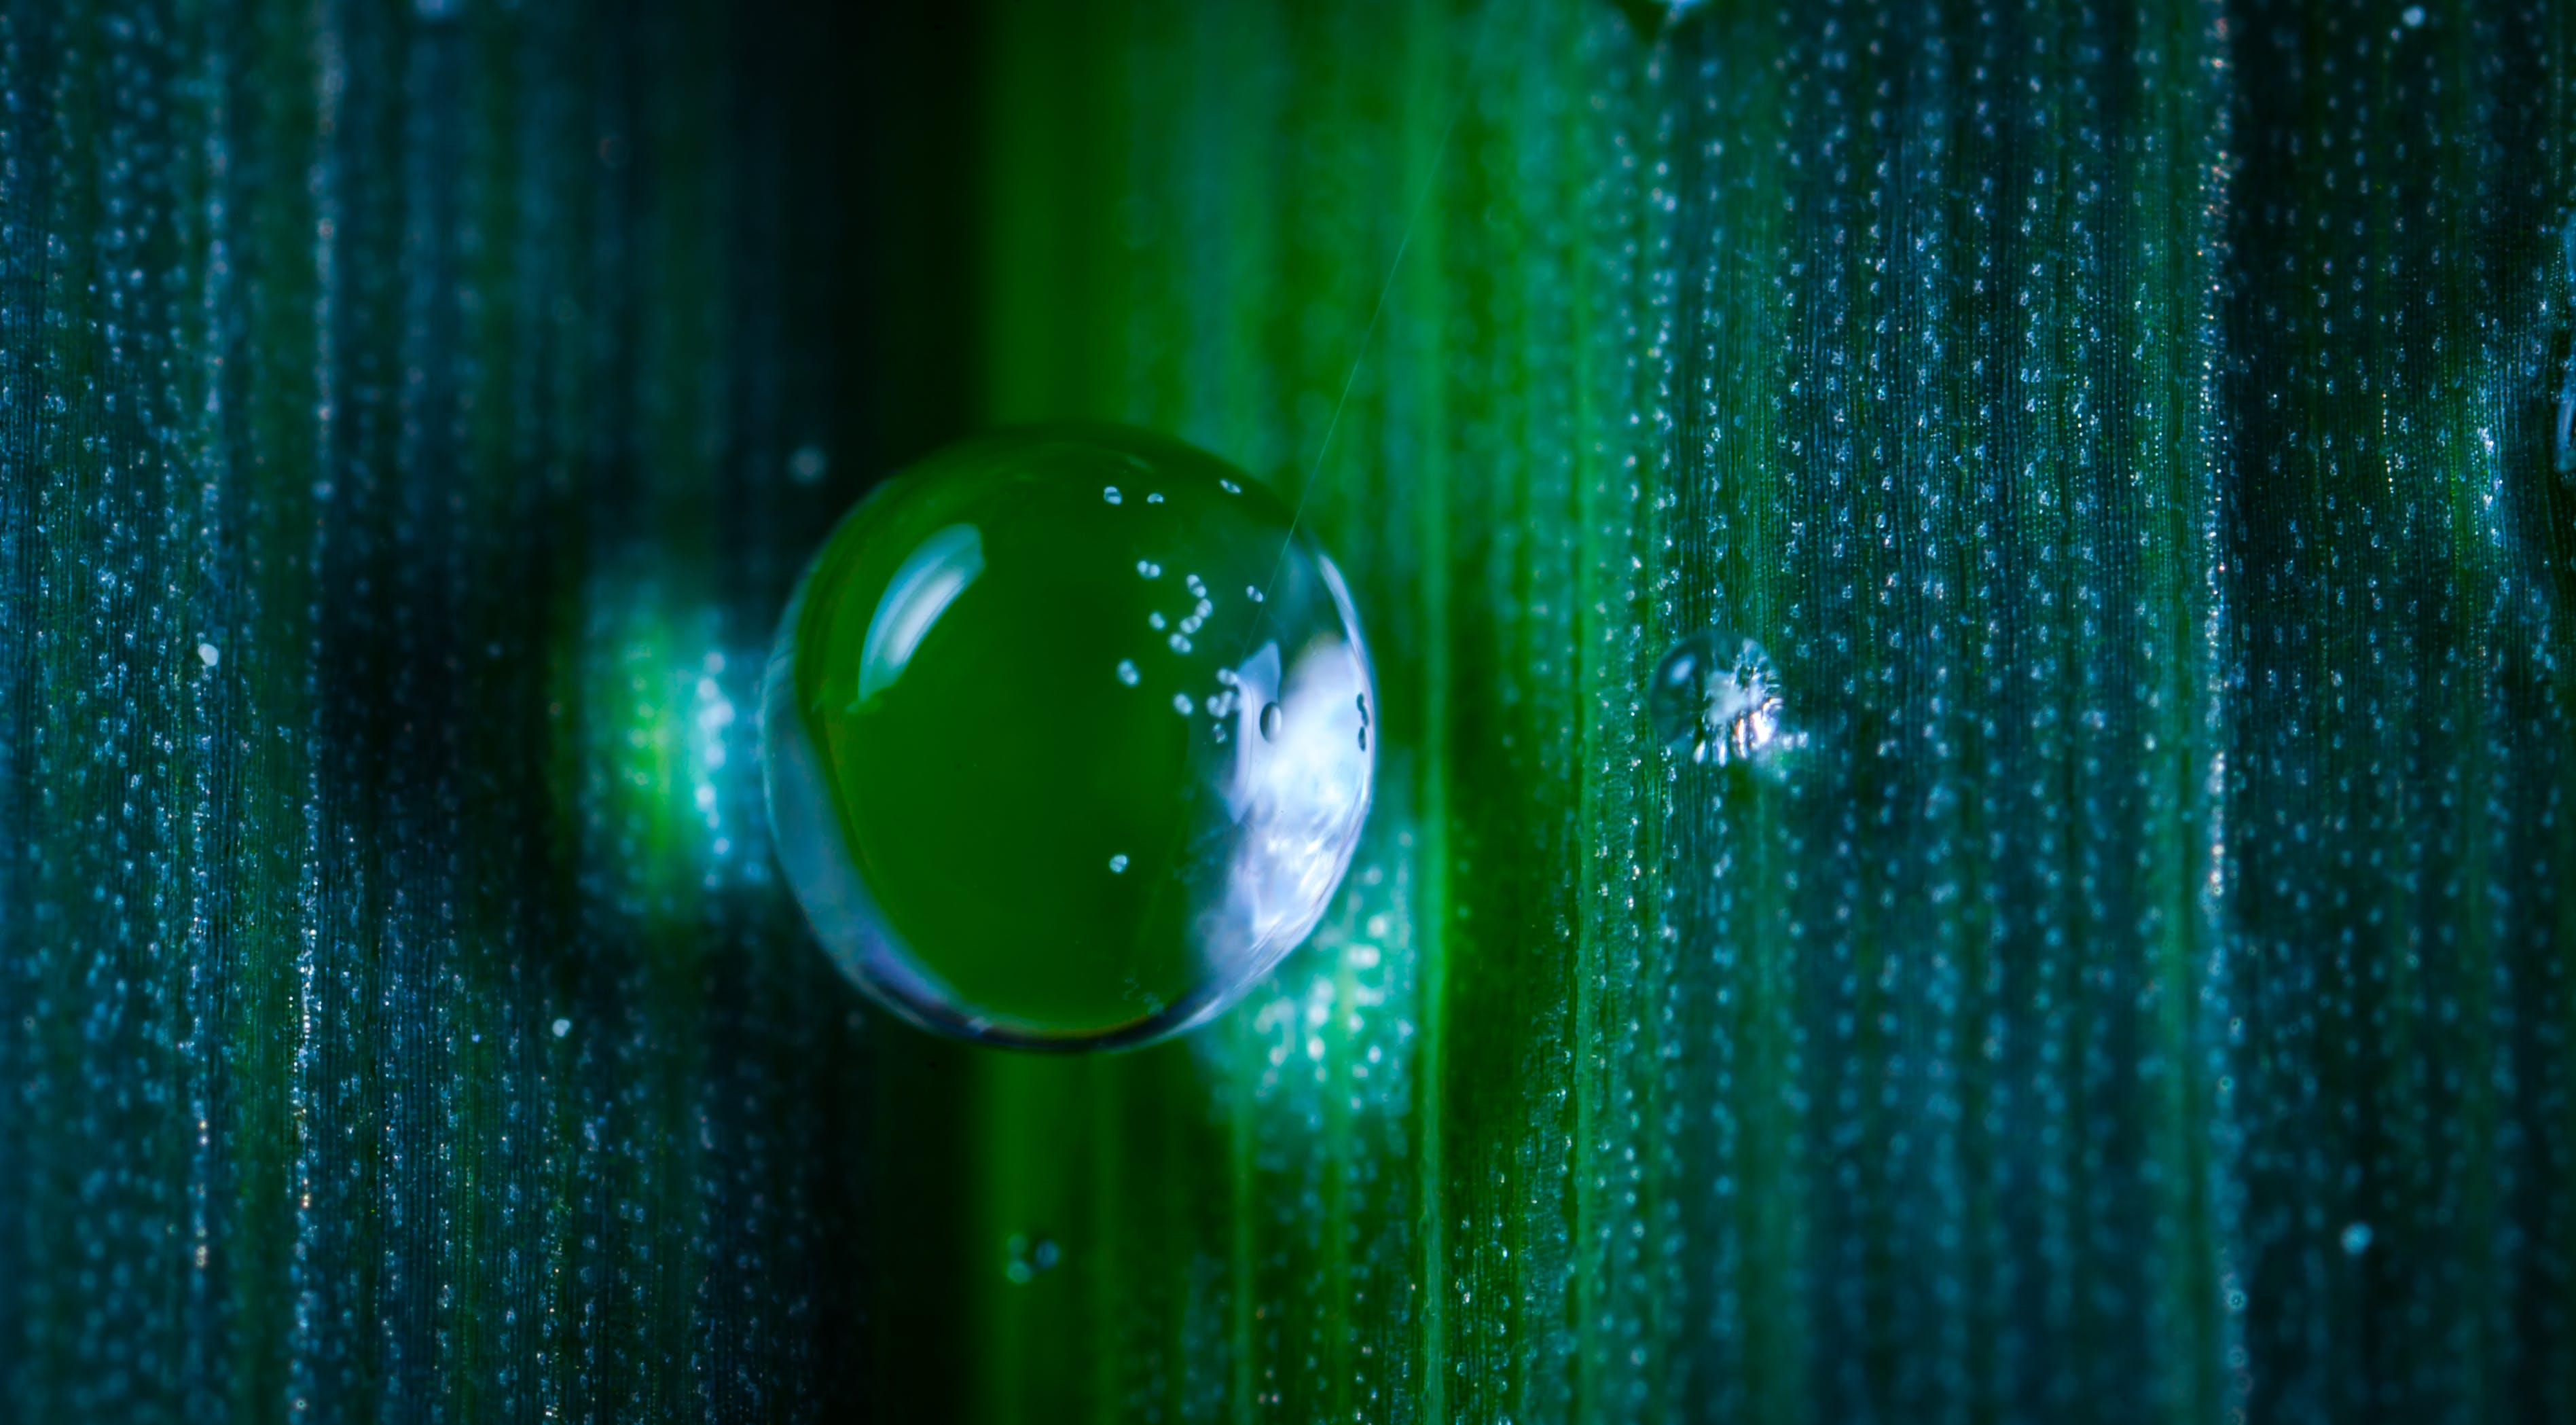 Closeup Photography of Dew